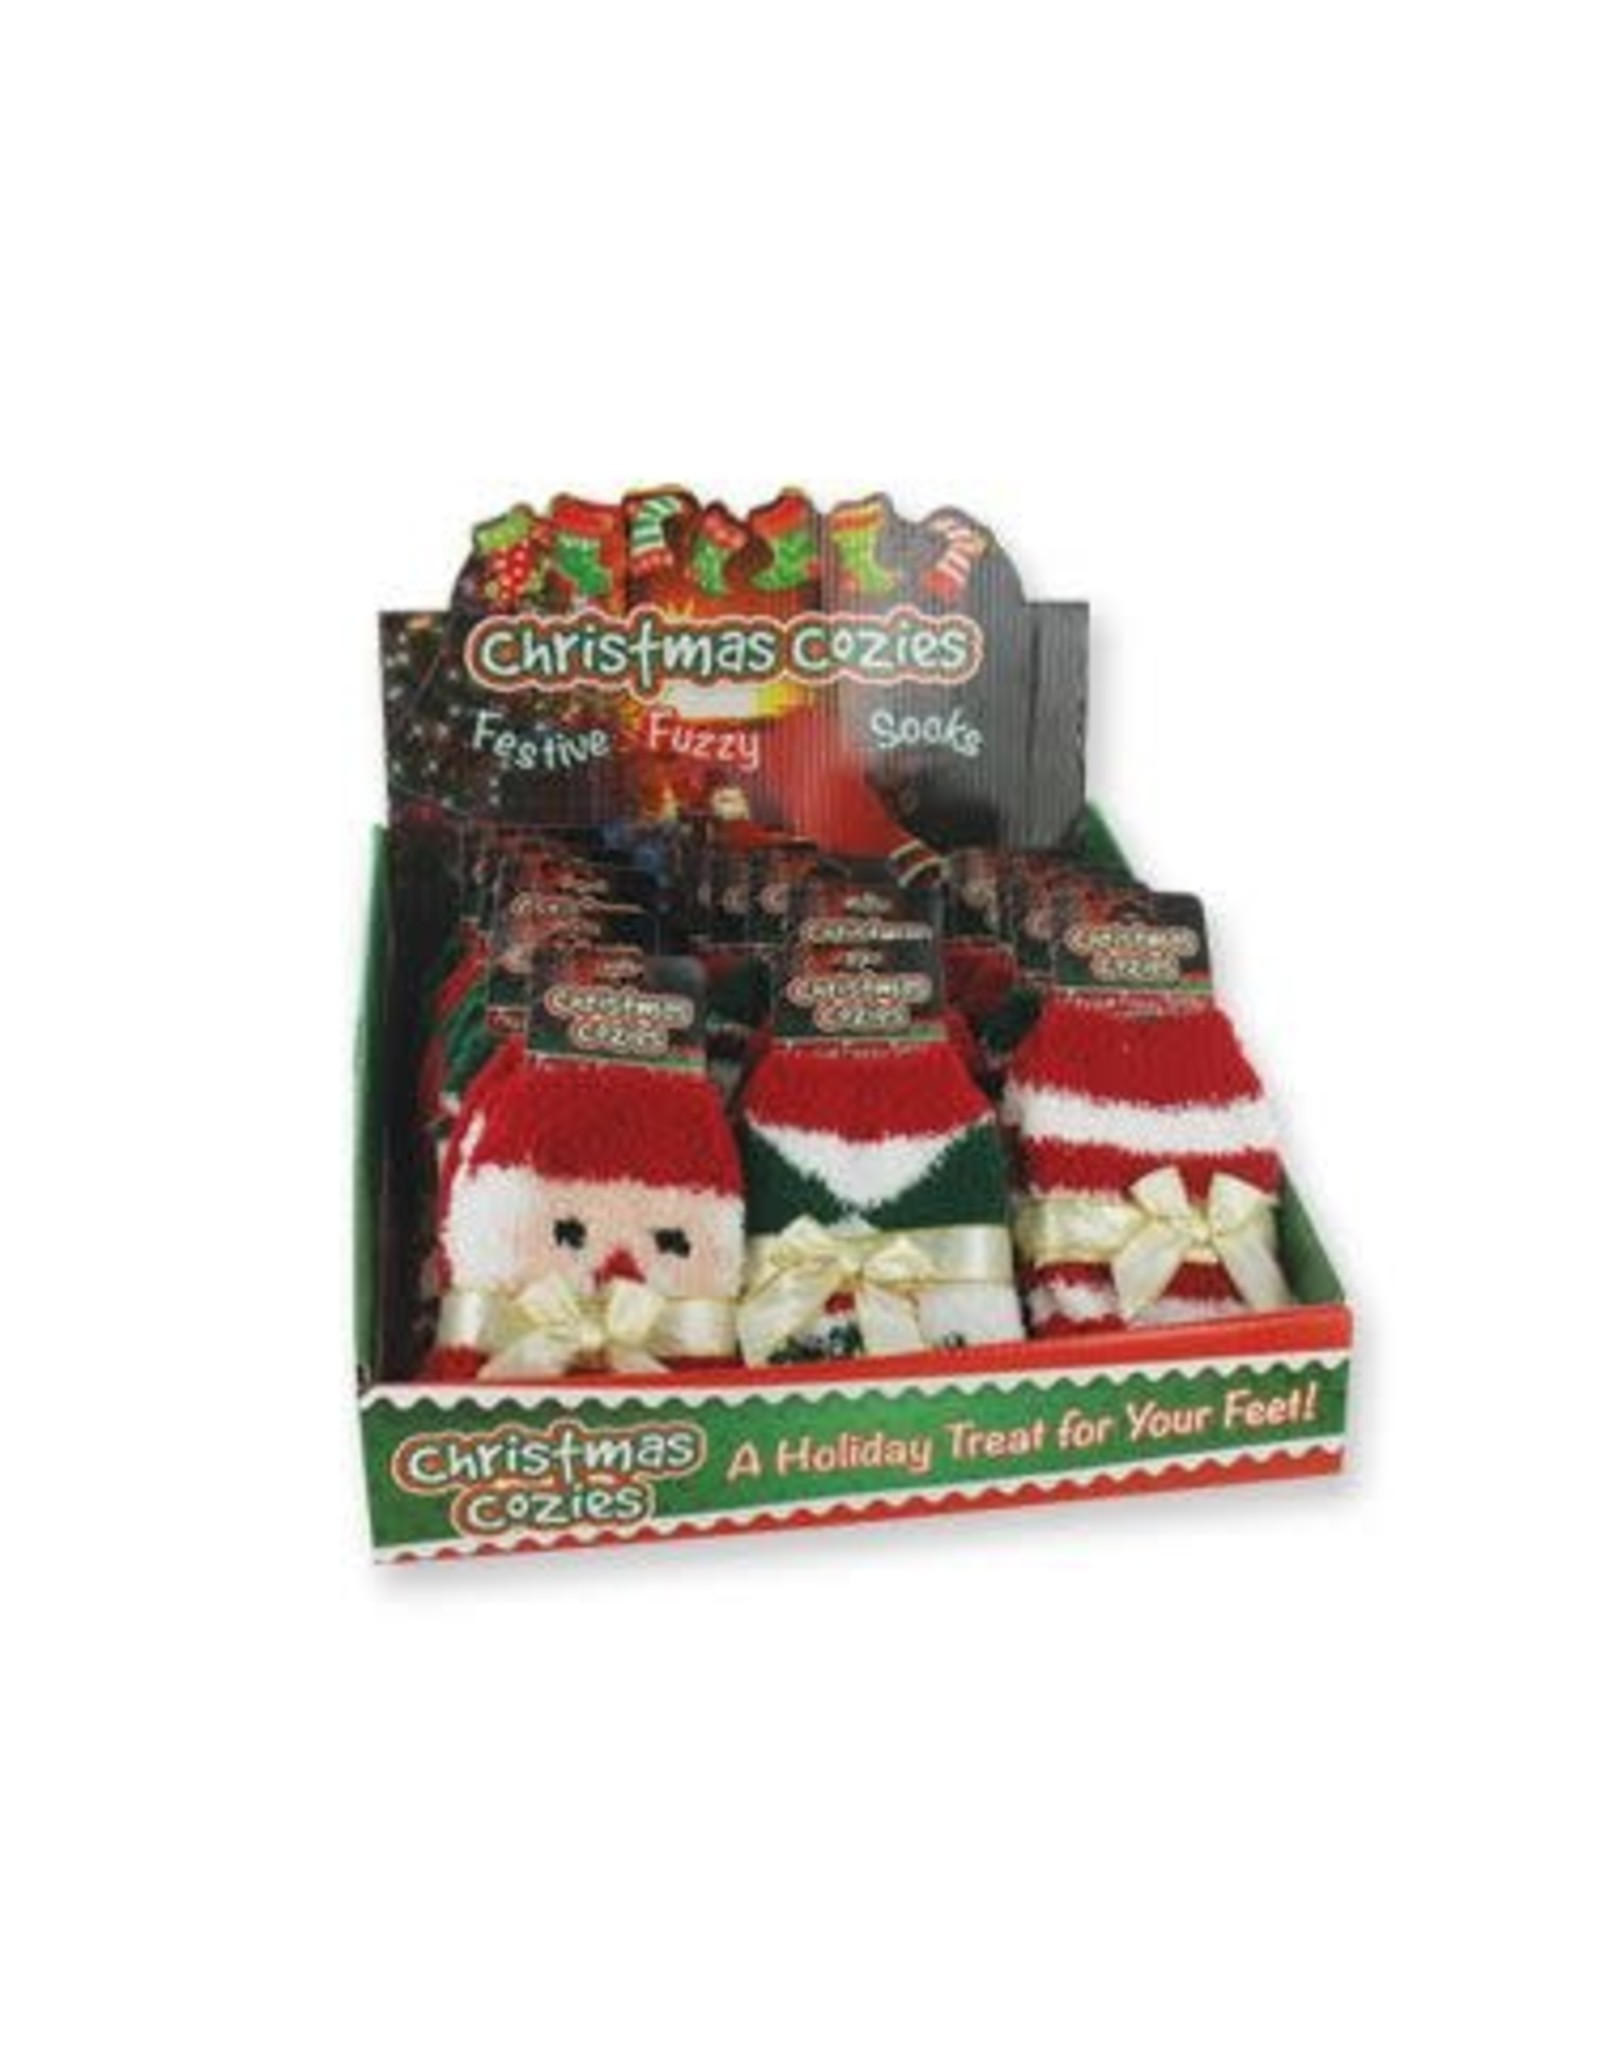 DM Merchandising Christmas Fuzzy Socks